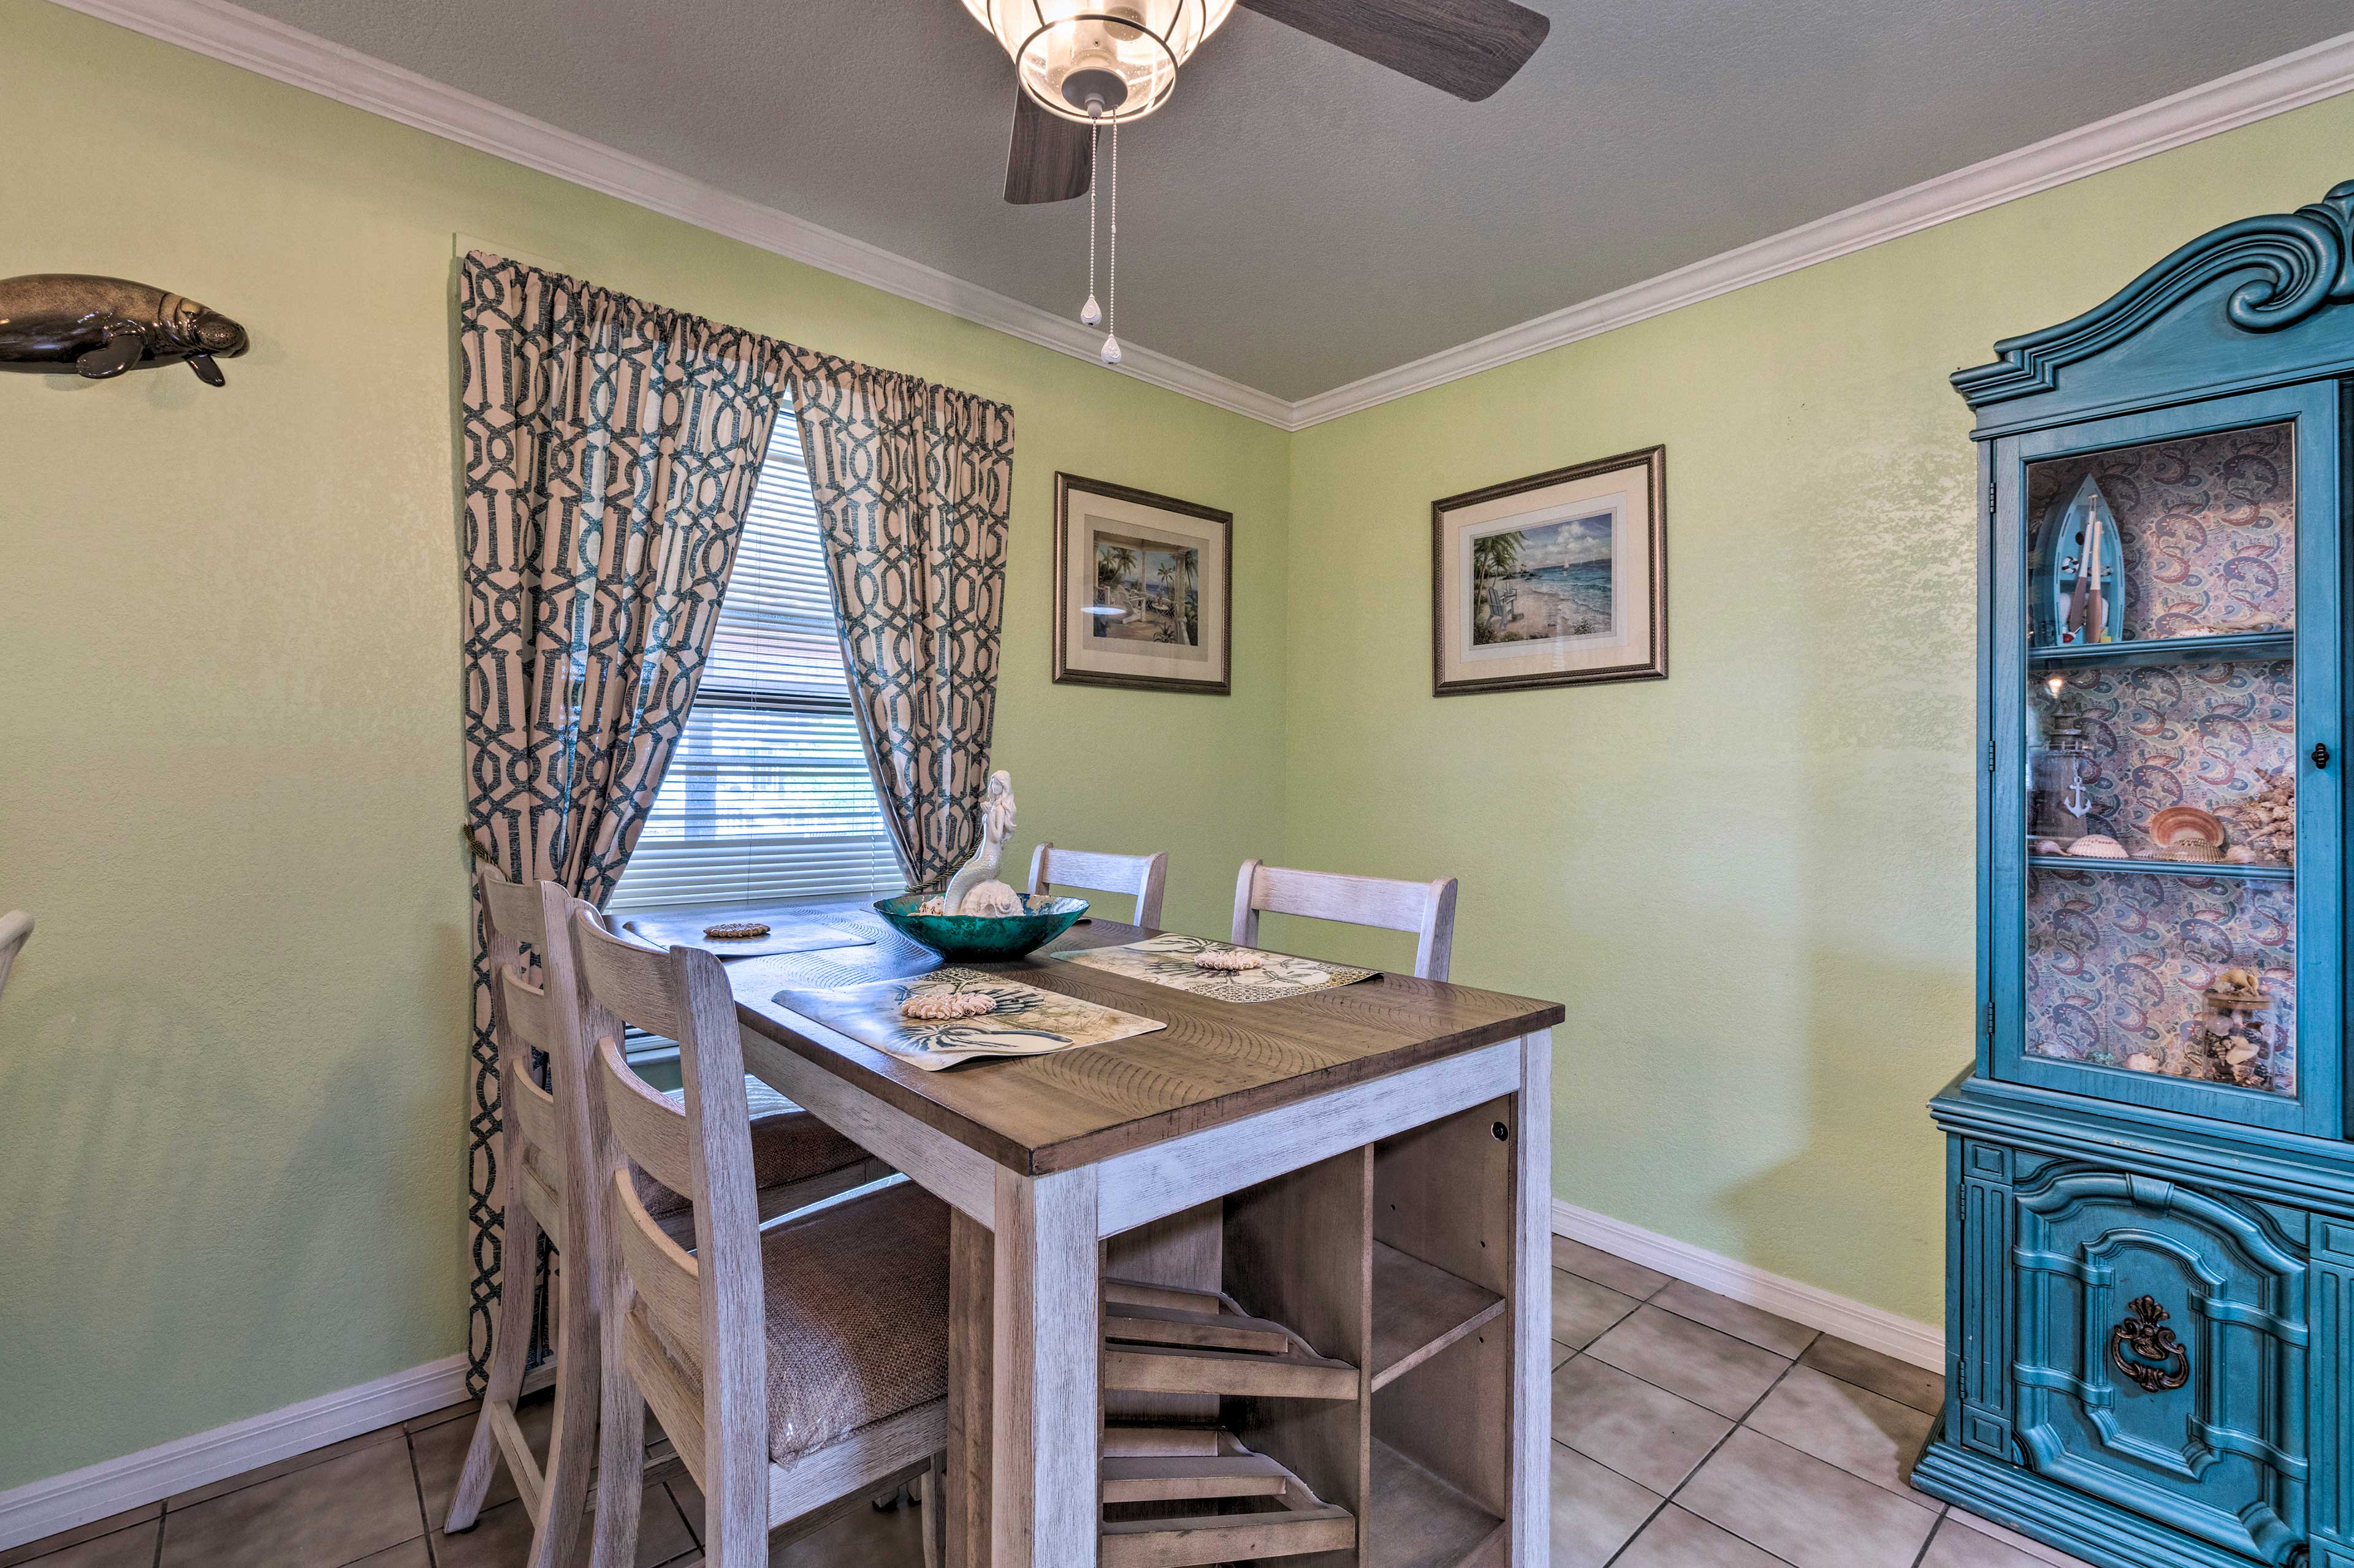 The counter and adjacent dining table seat up to 4 each.